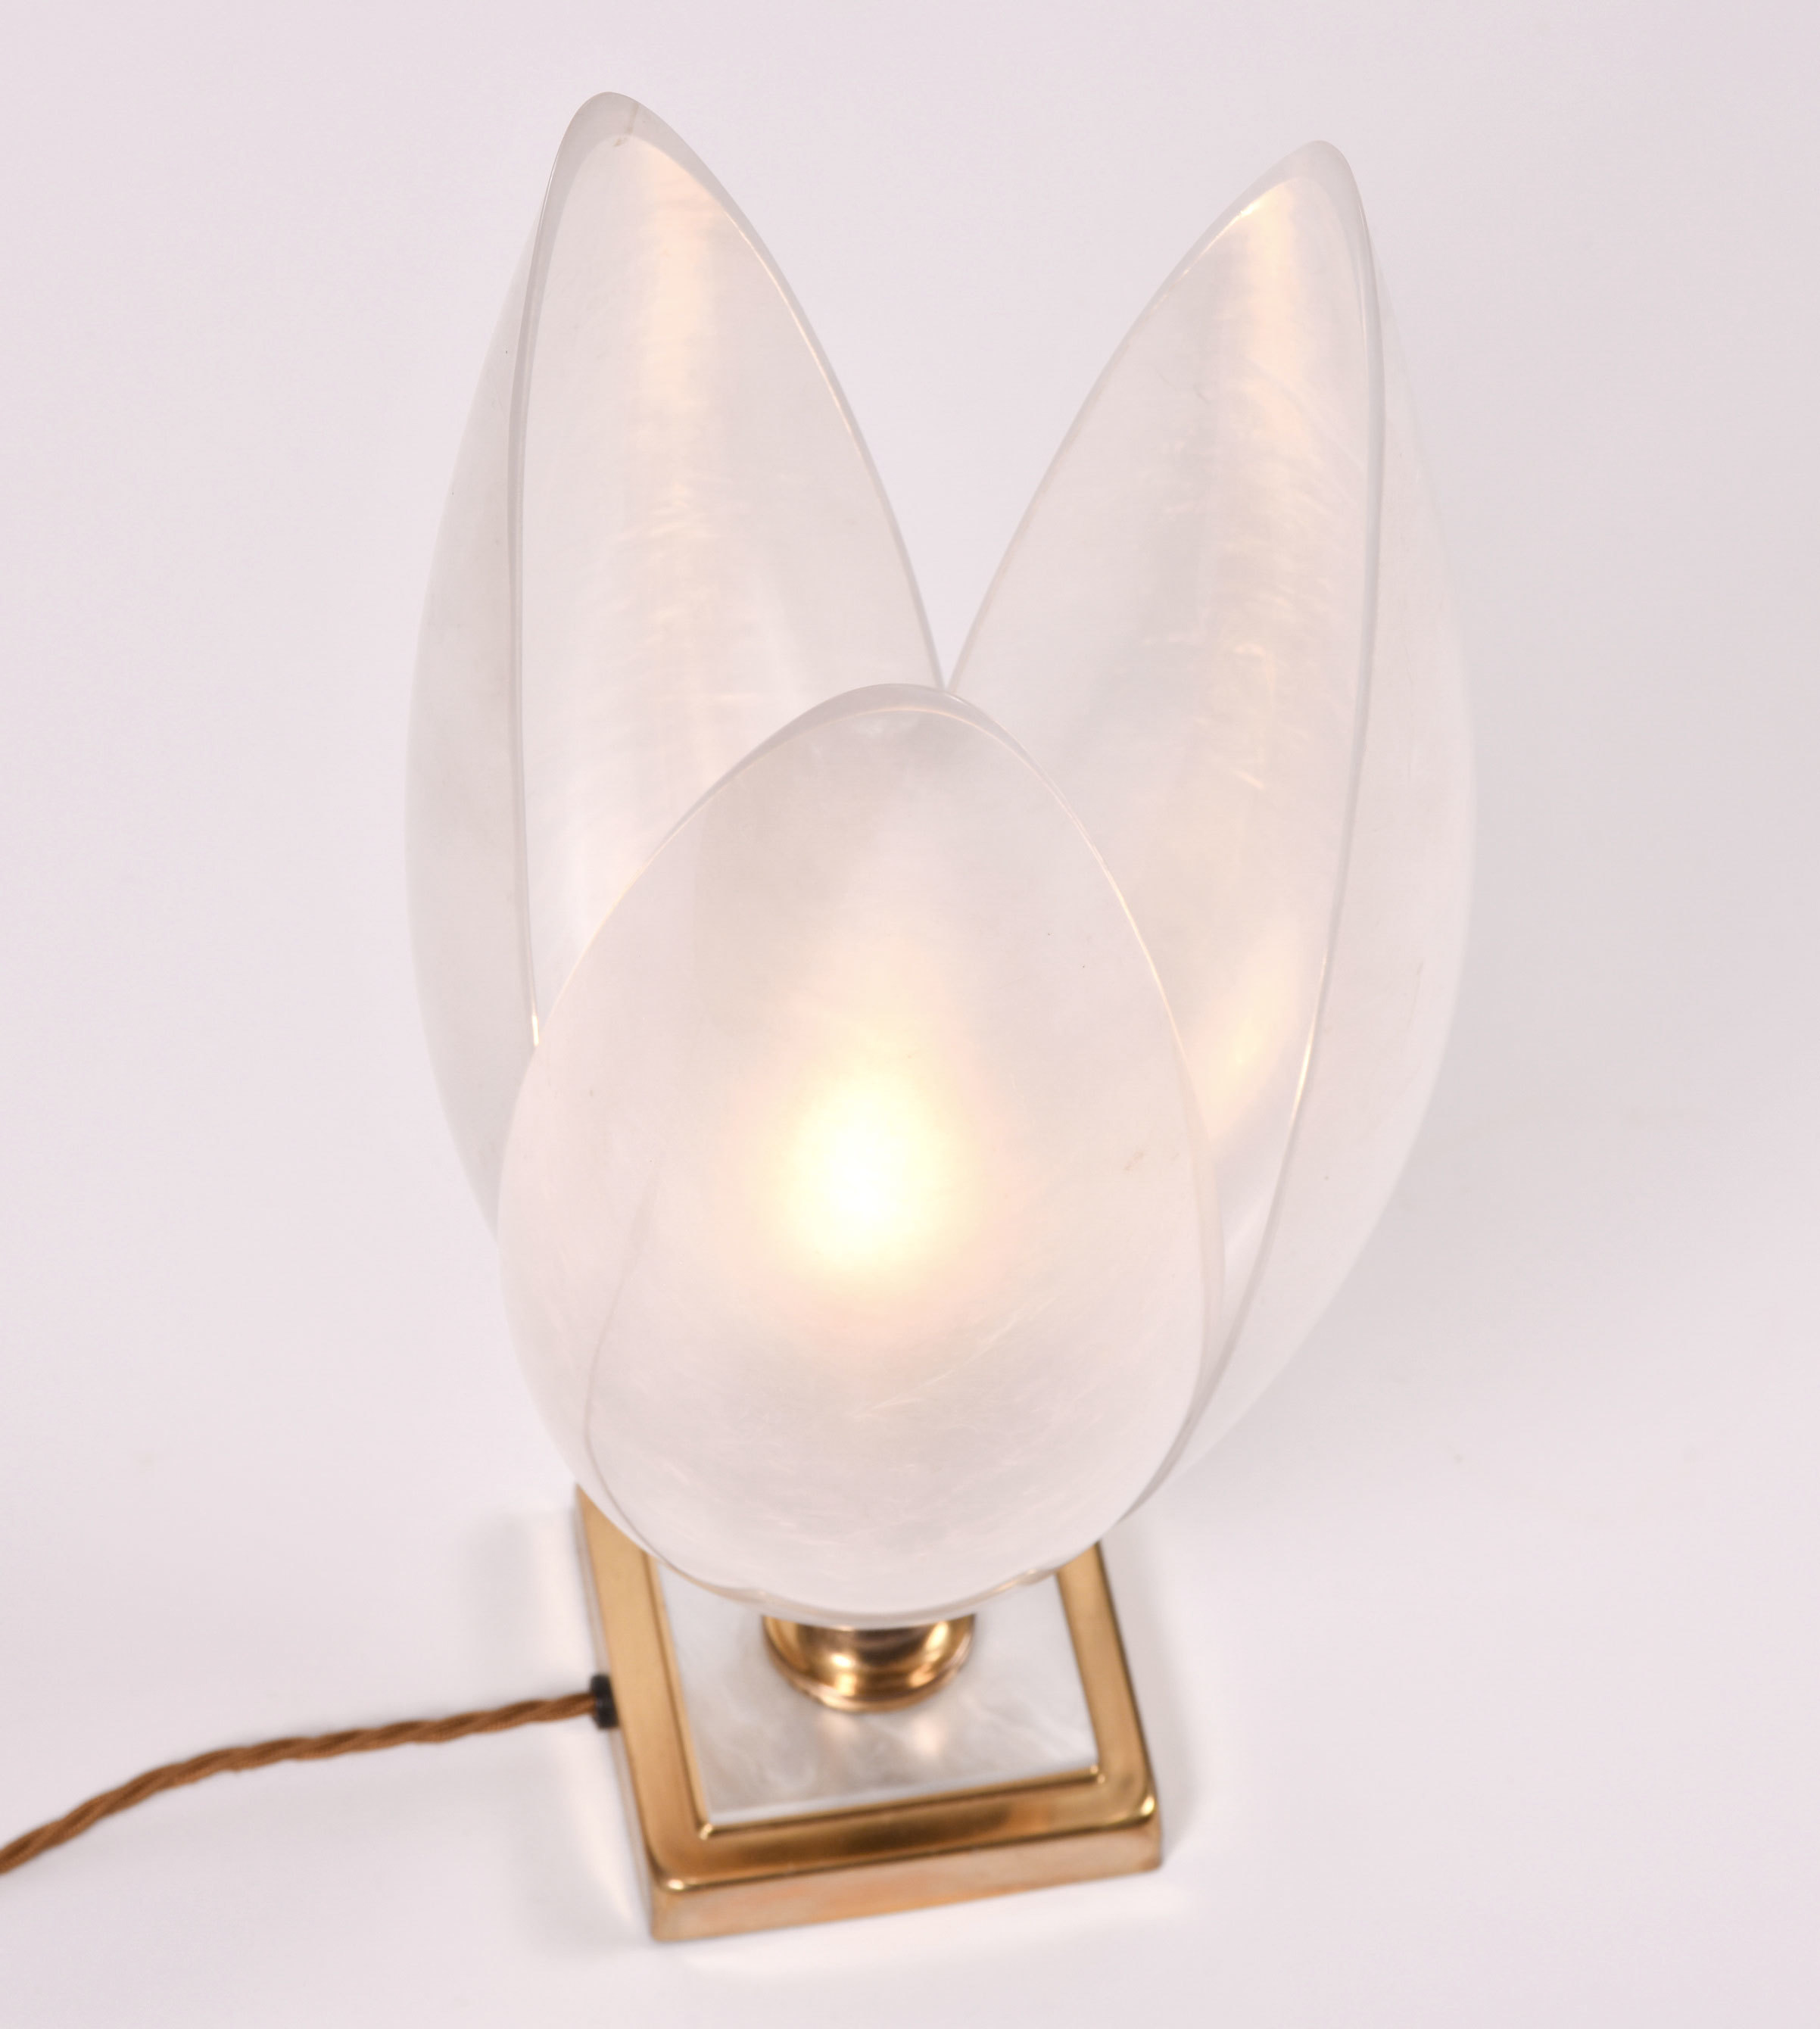 Lotus Flower Lamp 05